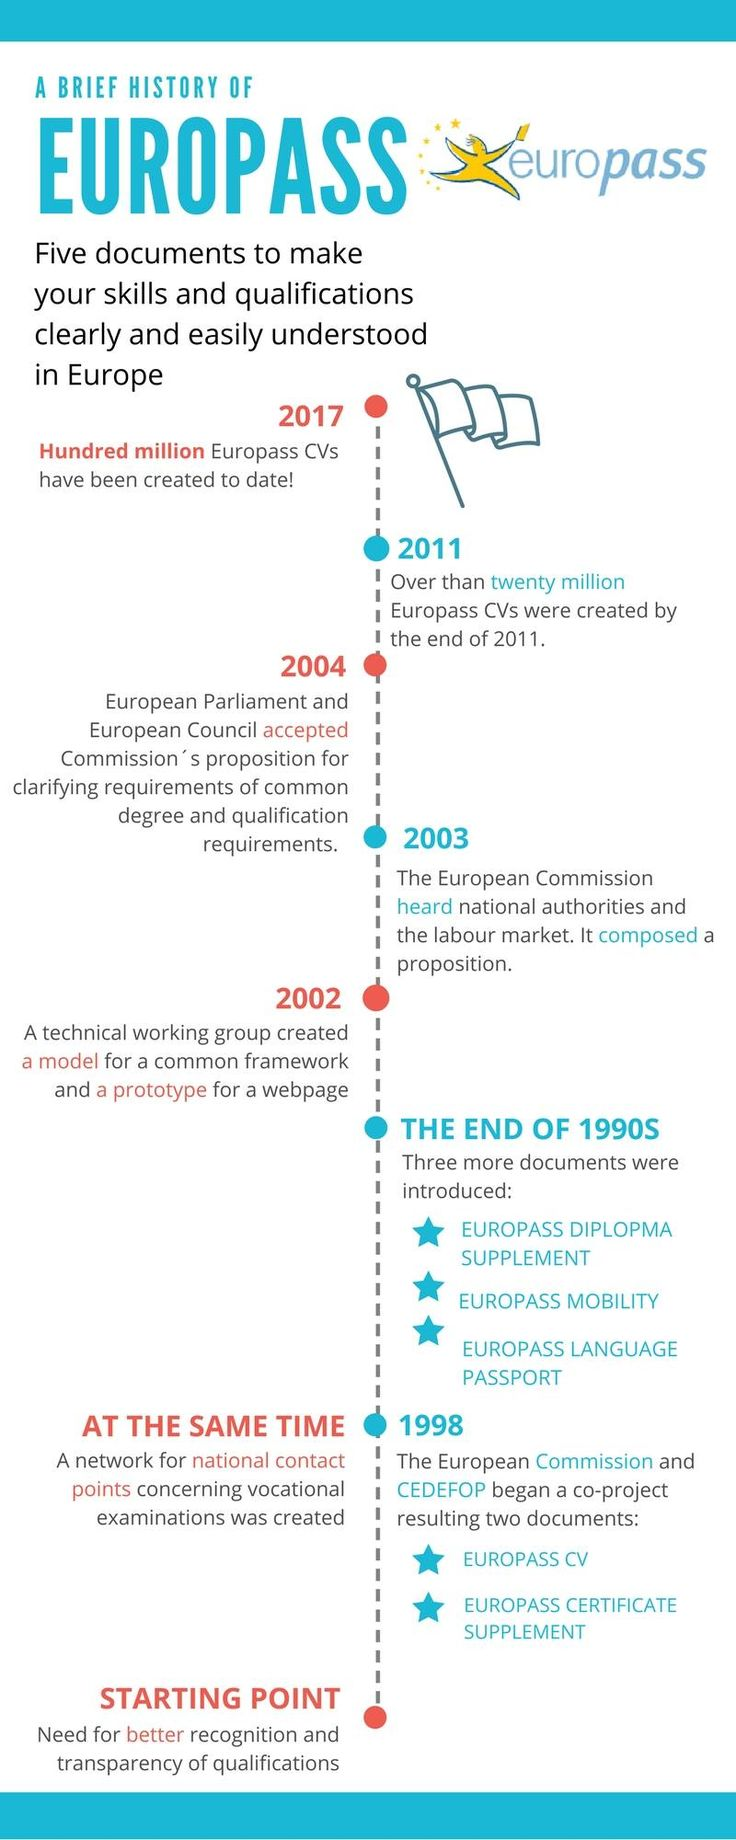 History of Europass in one picture. Make your CV here